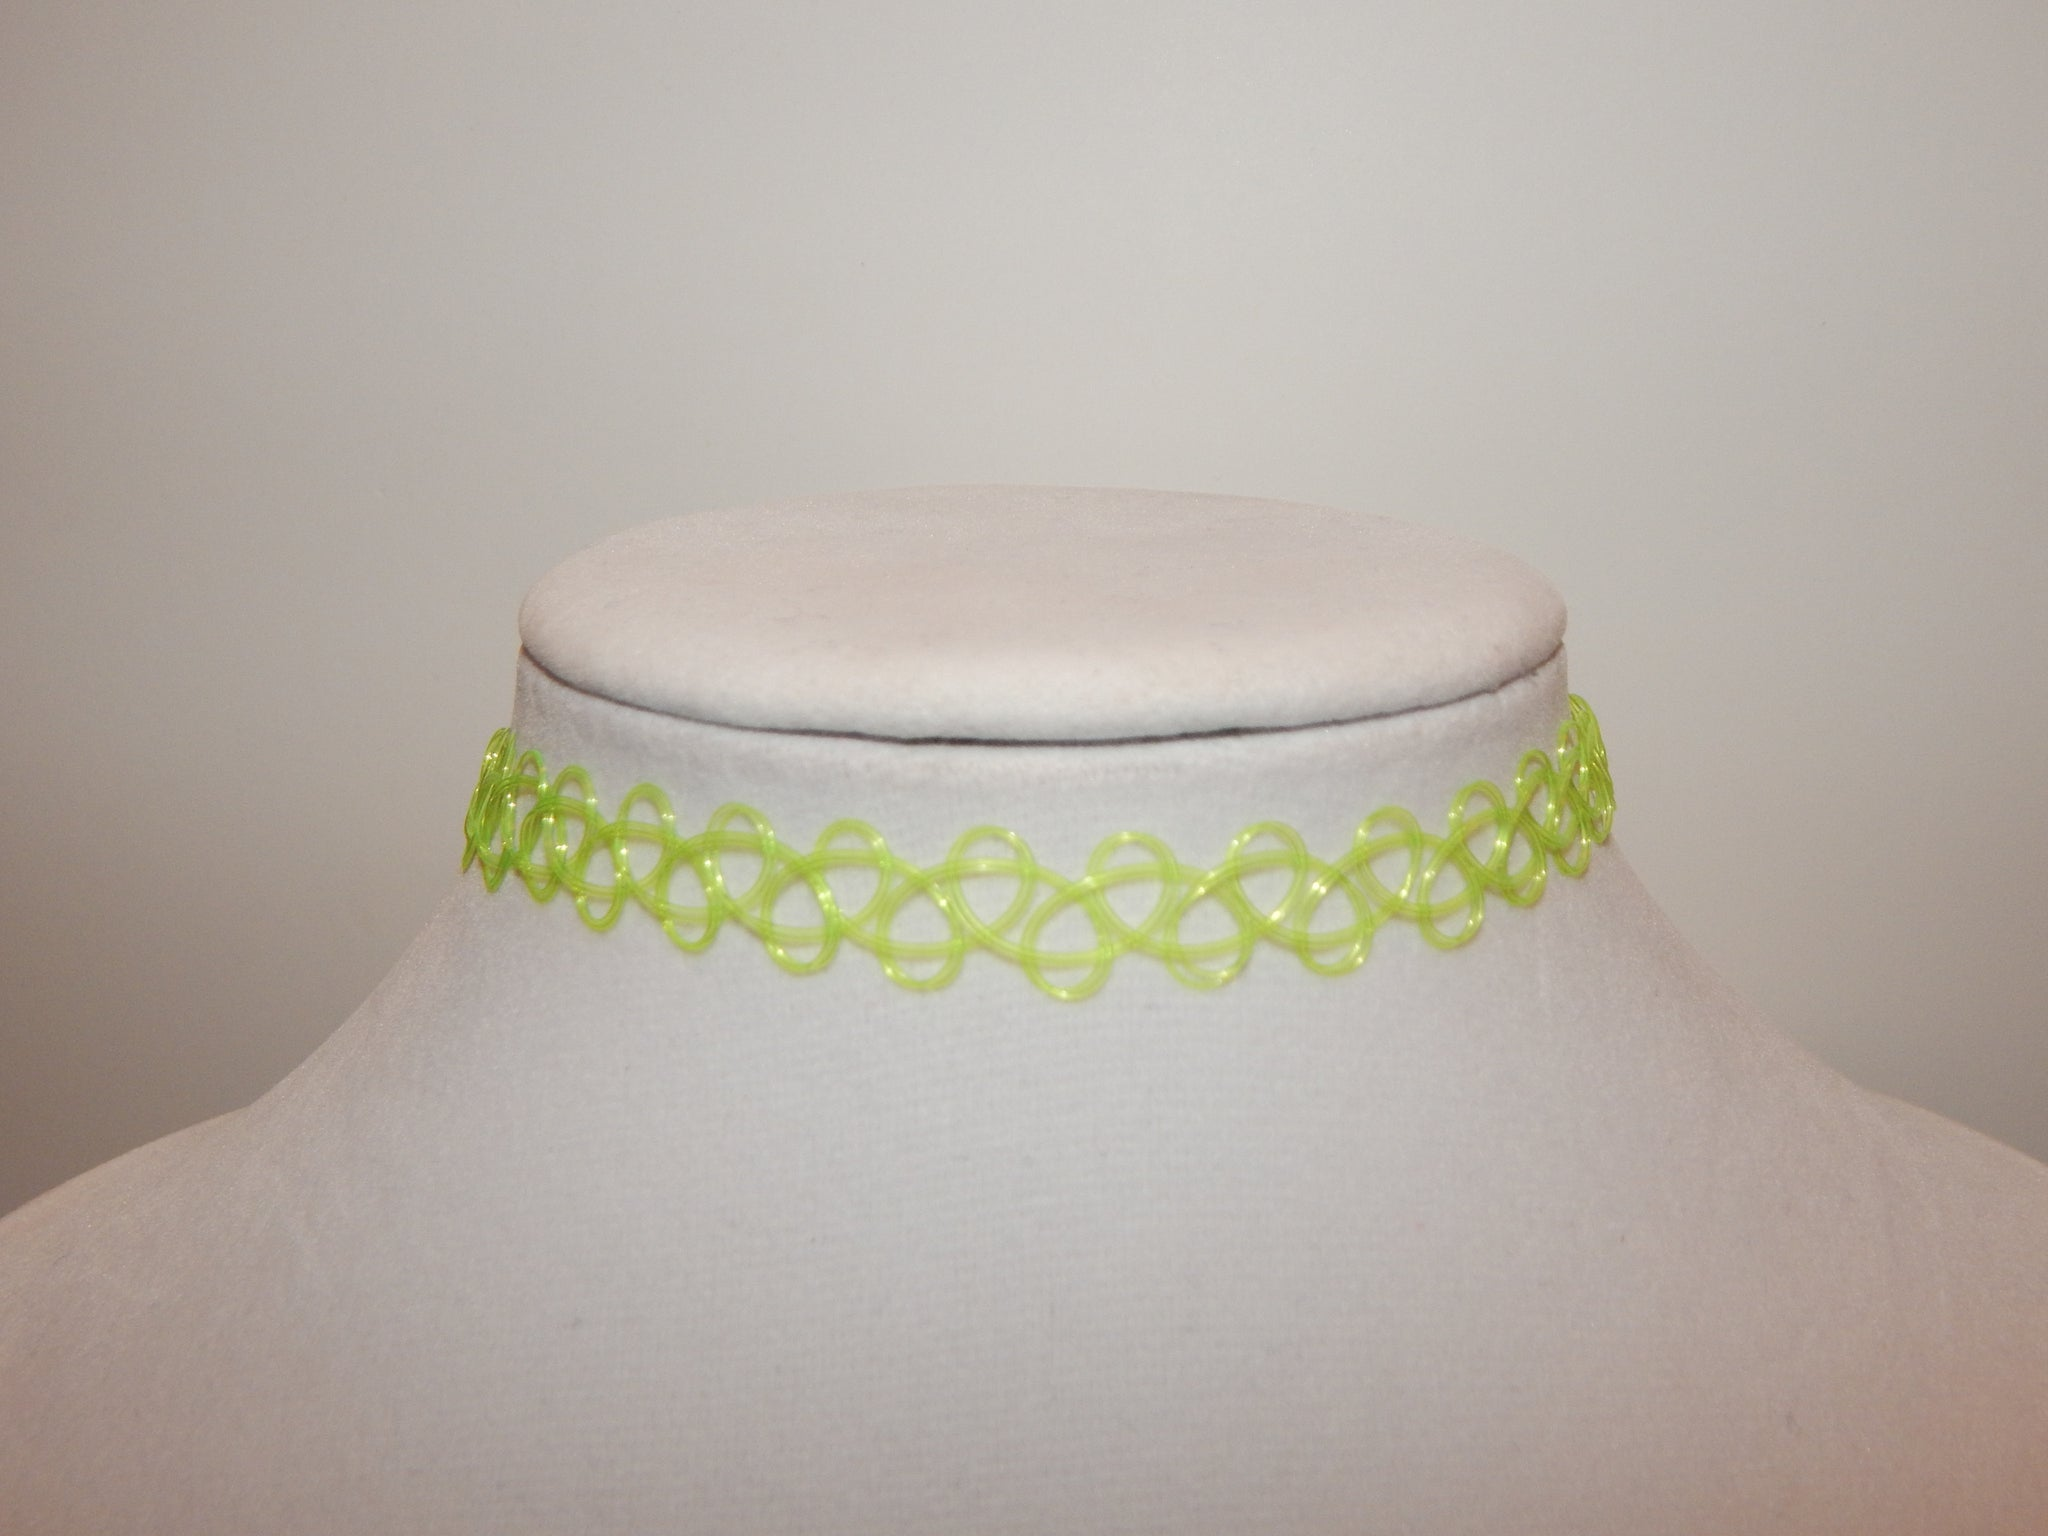 Neon Green Tattoo Choker